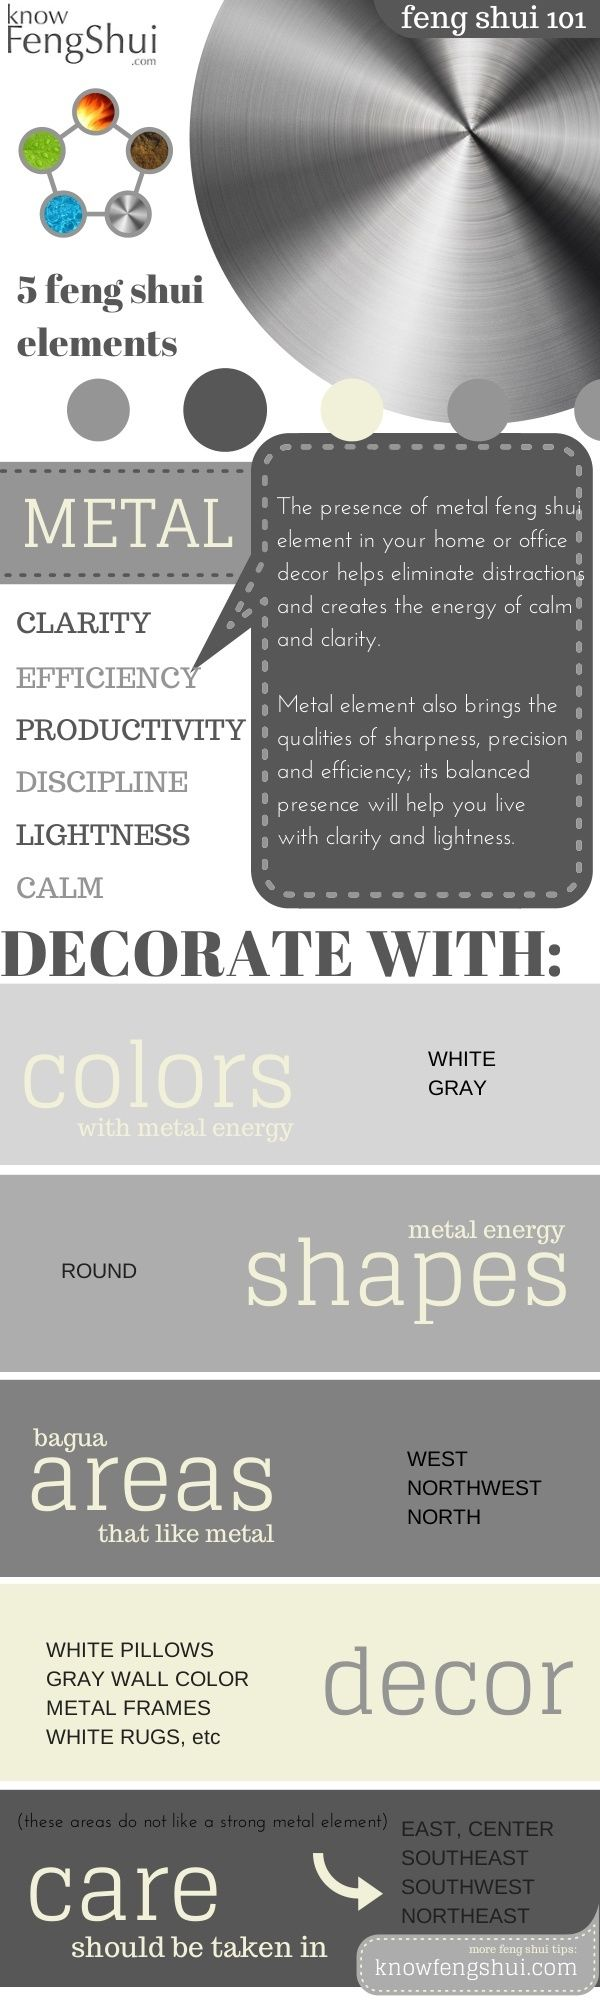 Feng Shui Element Decorating